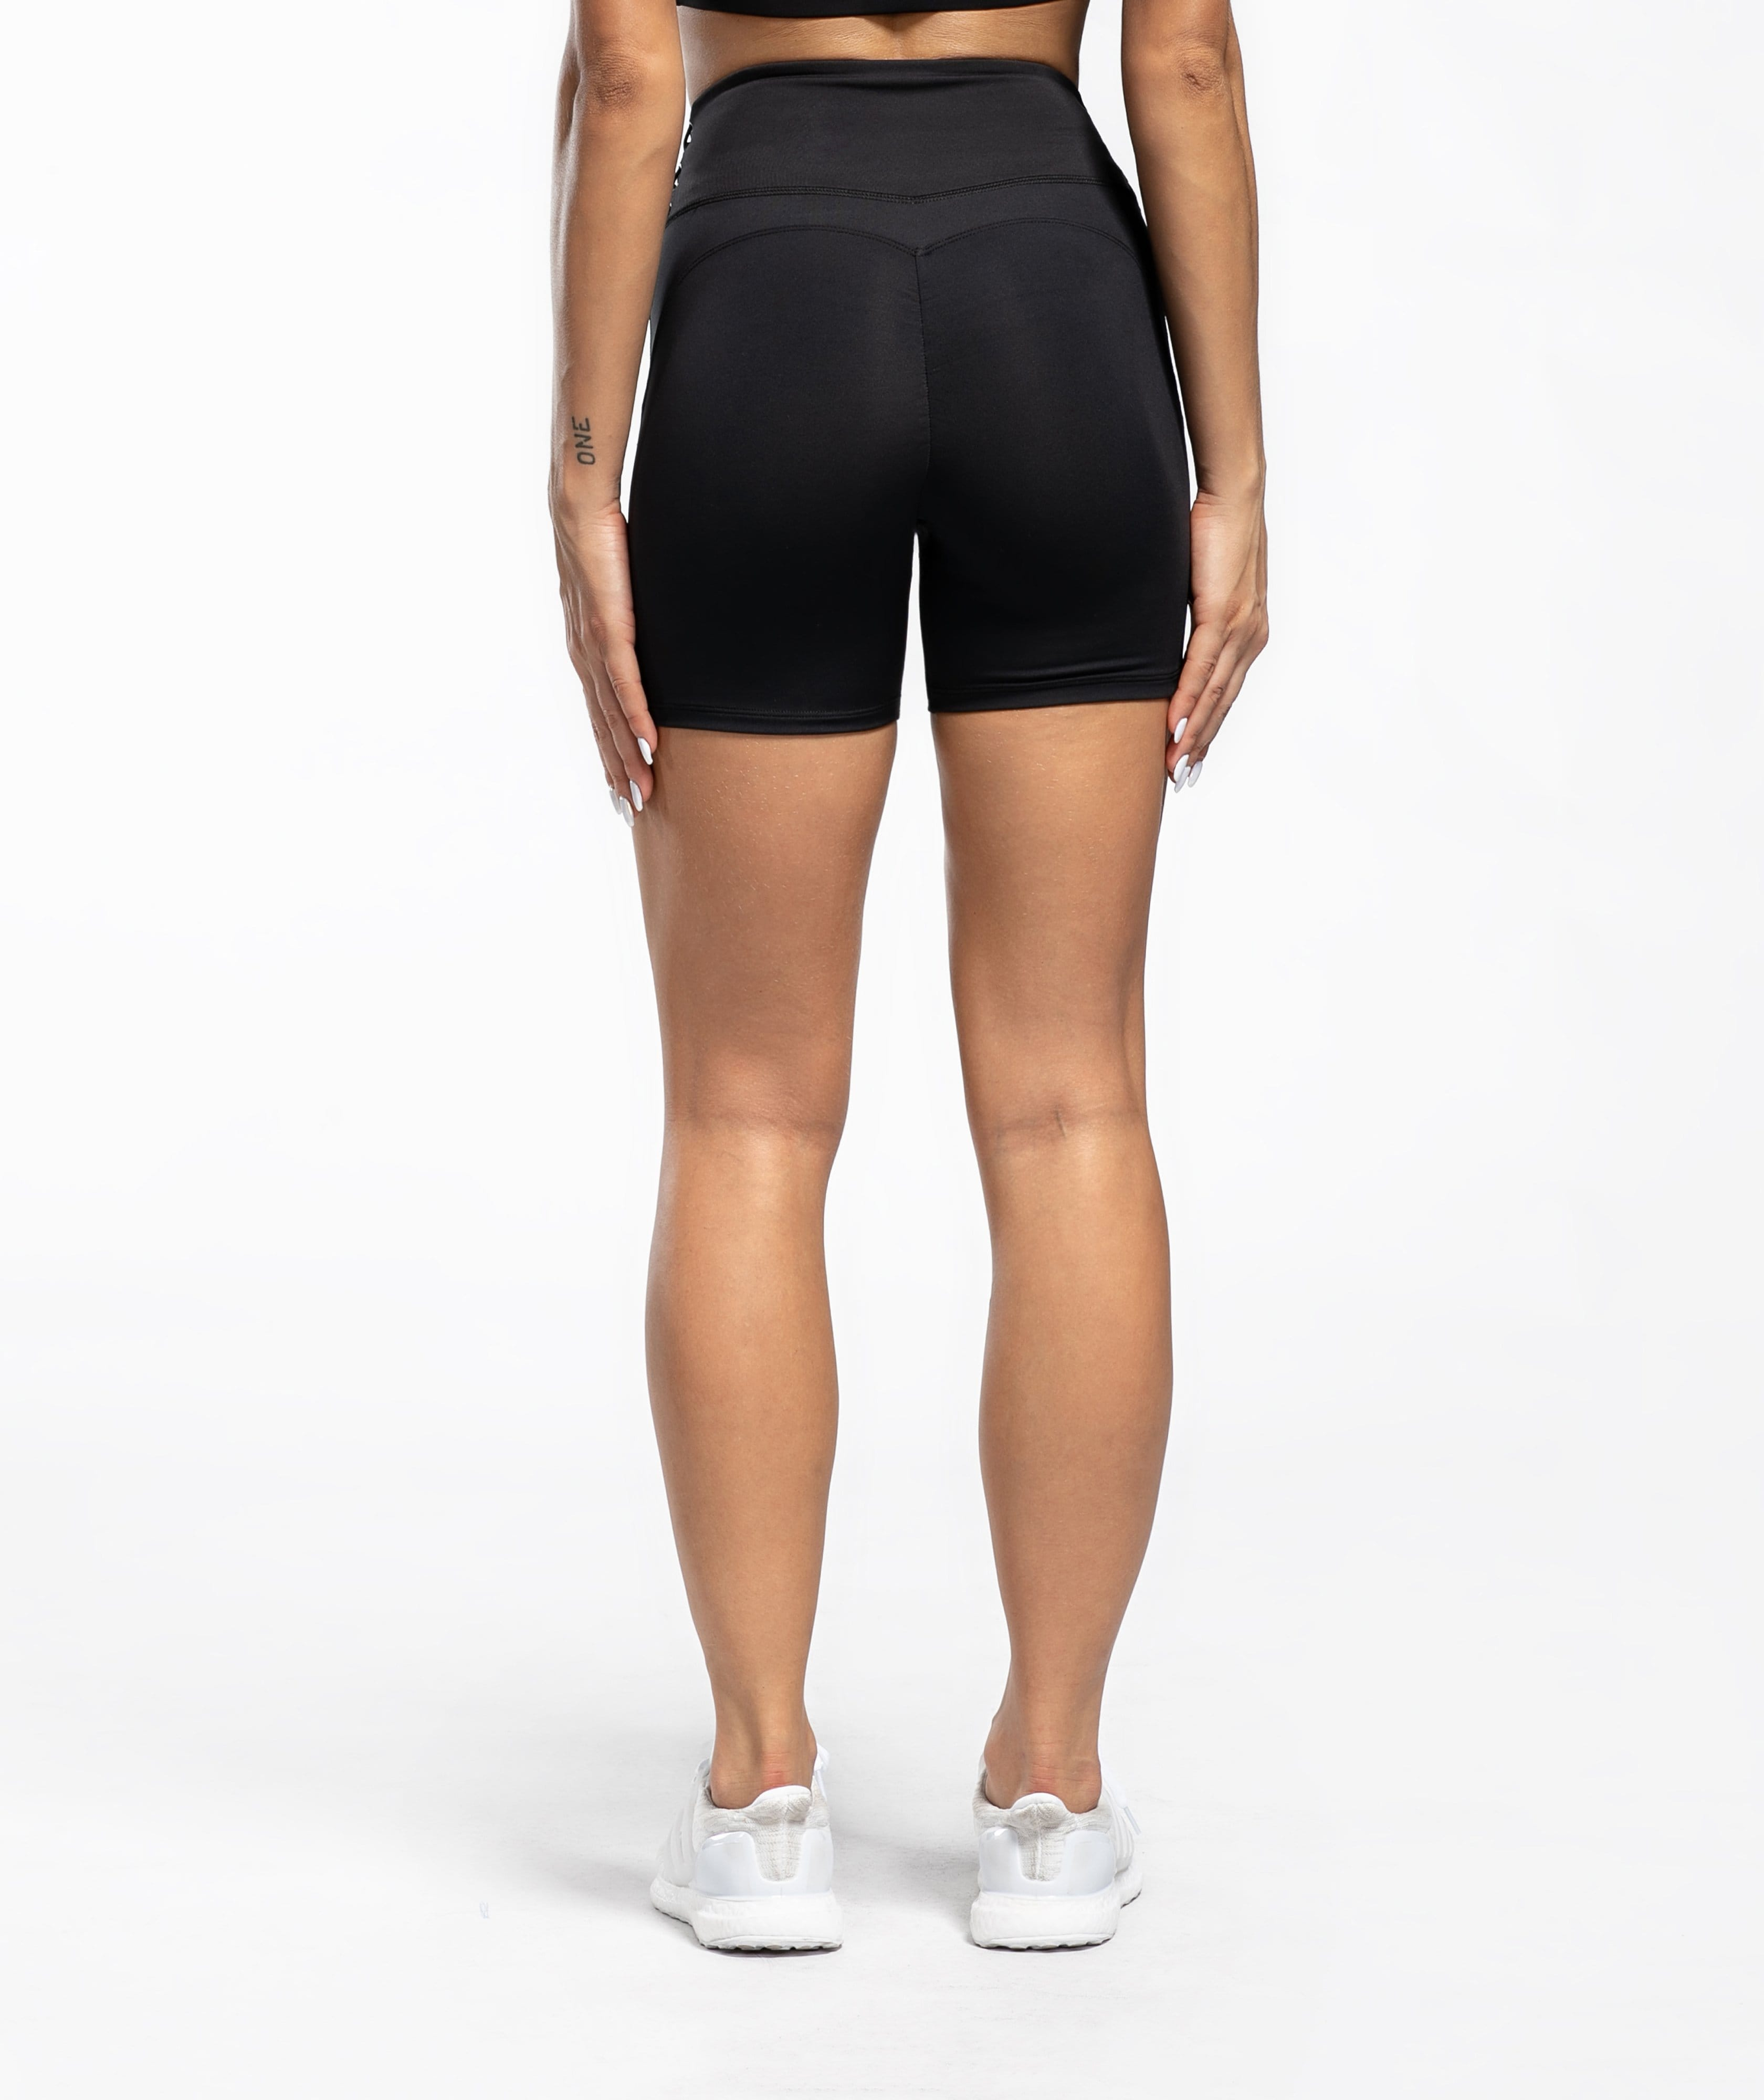 Honeypeach Sculpt Shorts - Black - Firm Abs Fitness